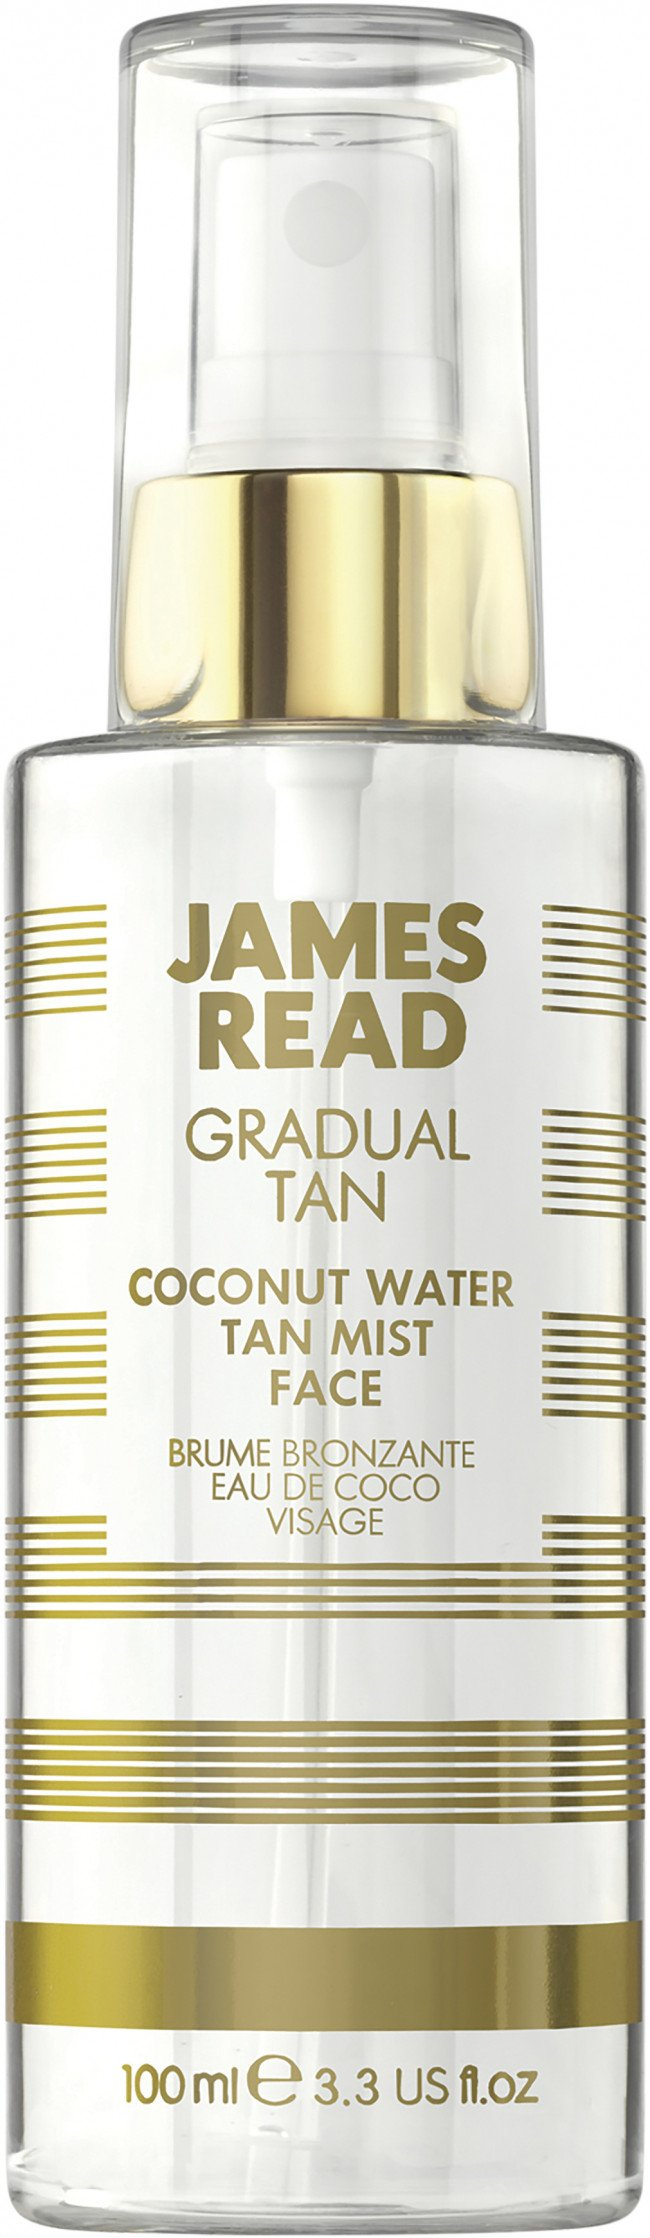 James Read - Coconut Water Tan Mist Face 100 ml